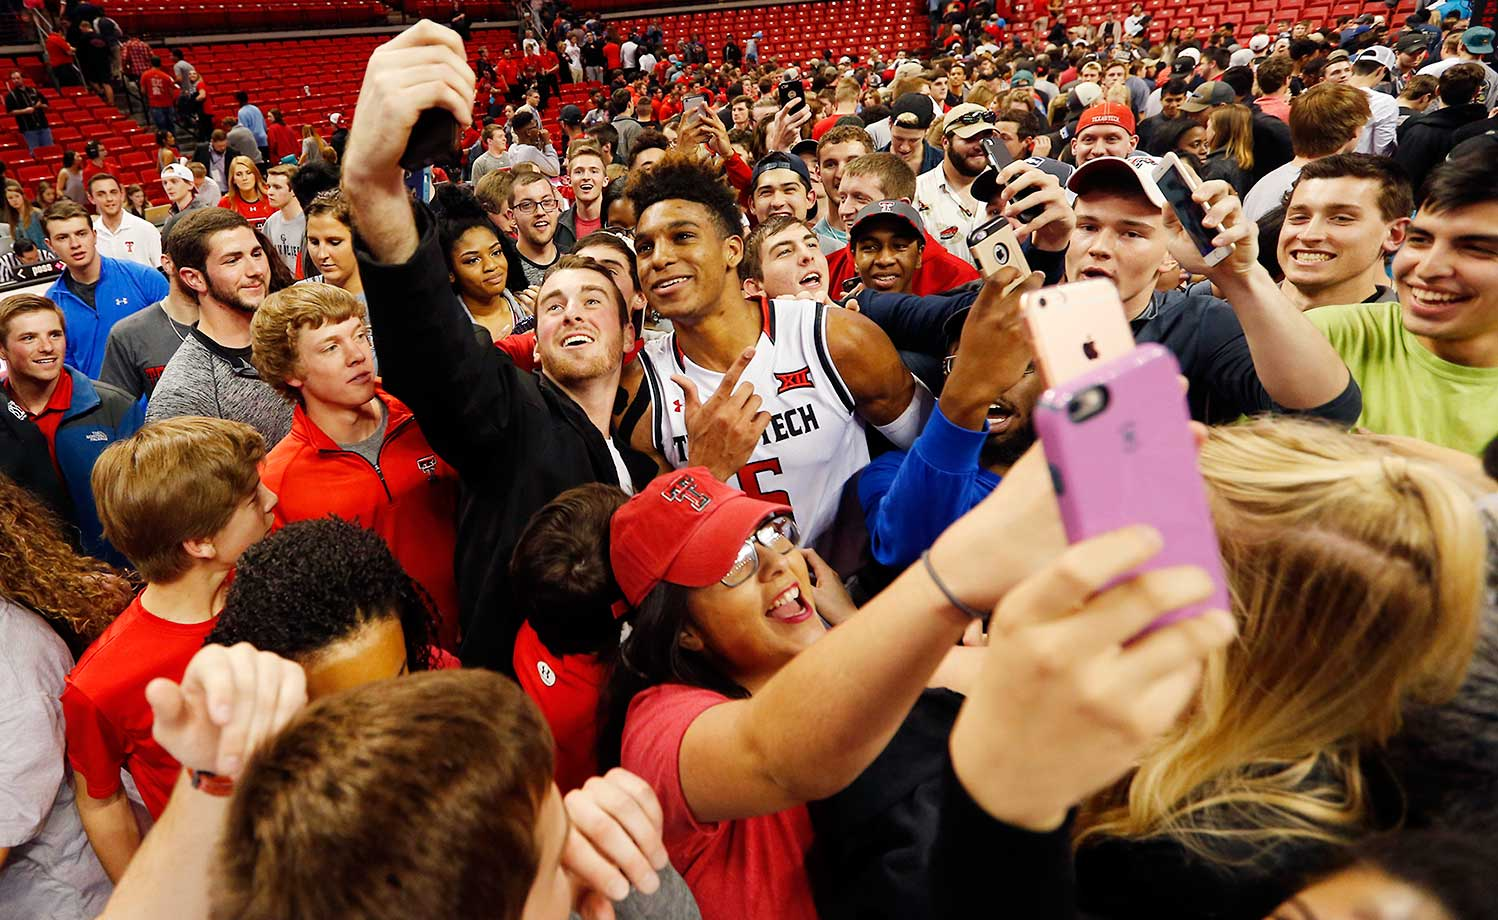 Texas Tech forward Justin Gray poses for photos with fans after Tech defeated Iowa State 85-82 in overtime.